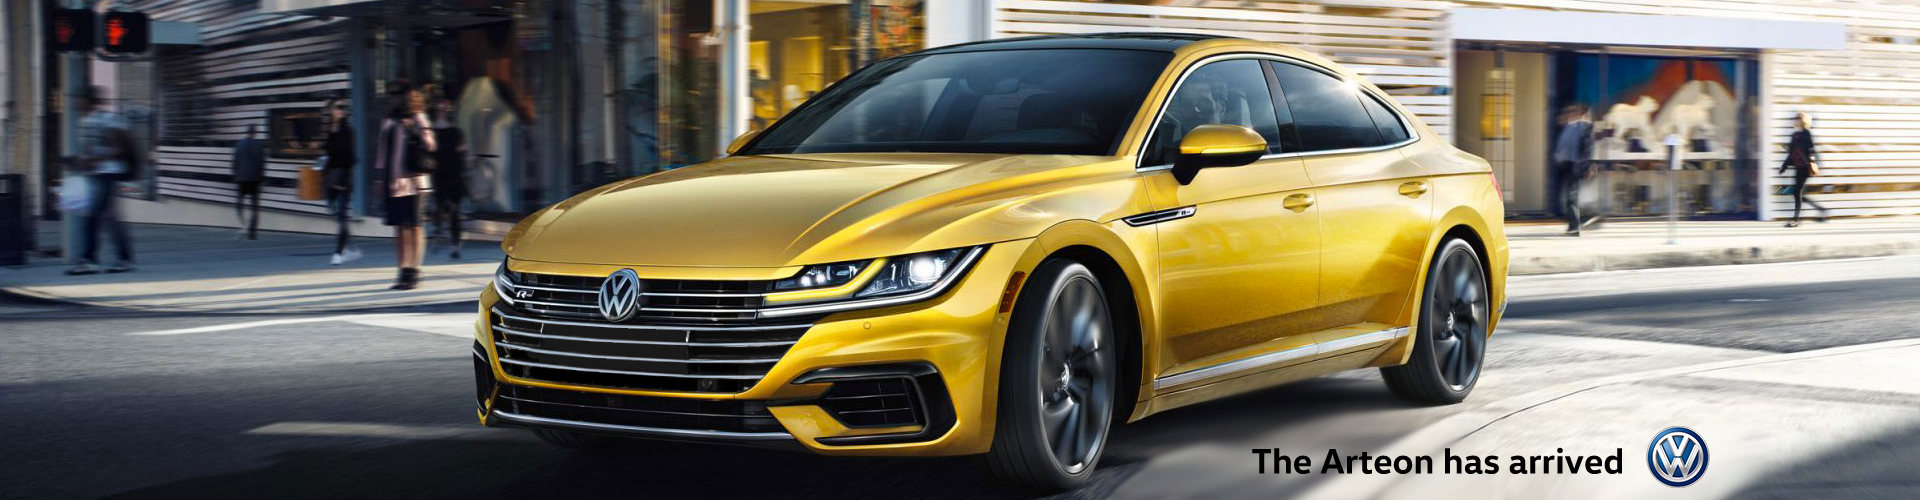 Arteon has arrived